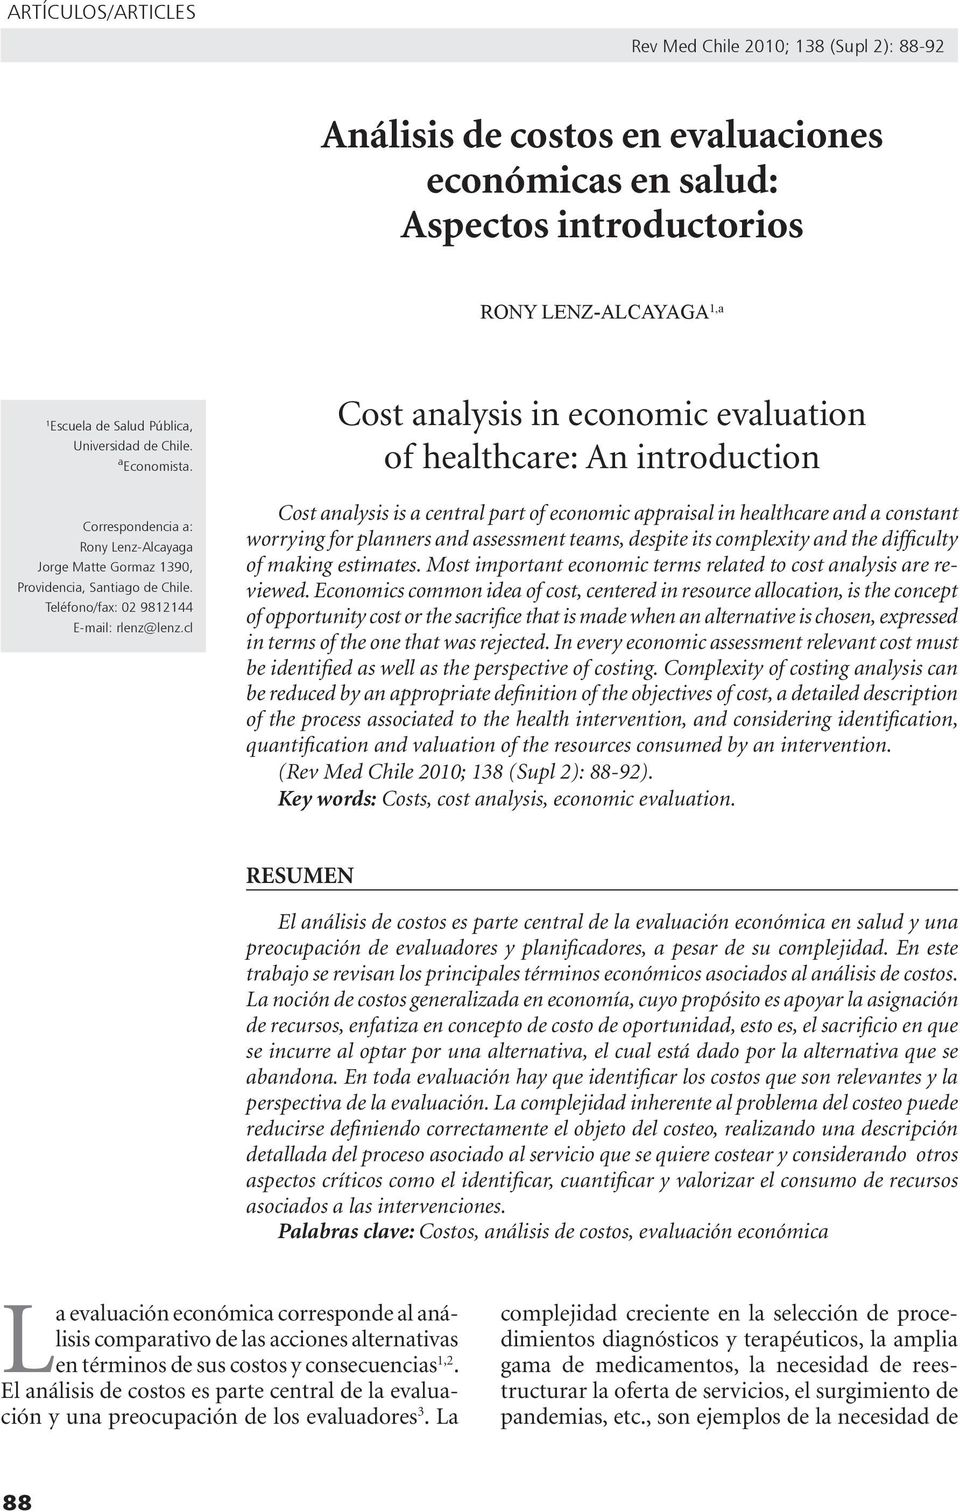 cl Cost analysis in economic evaluation of healthcare: An introduction Cost analysis is a central part of economic appraisal in healthcare and a constant worrying for planners and assessment teams,